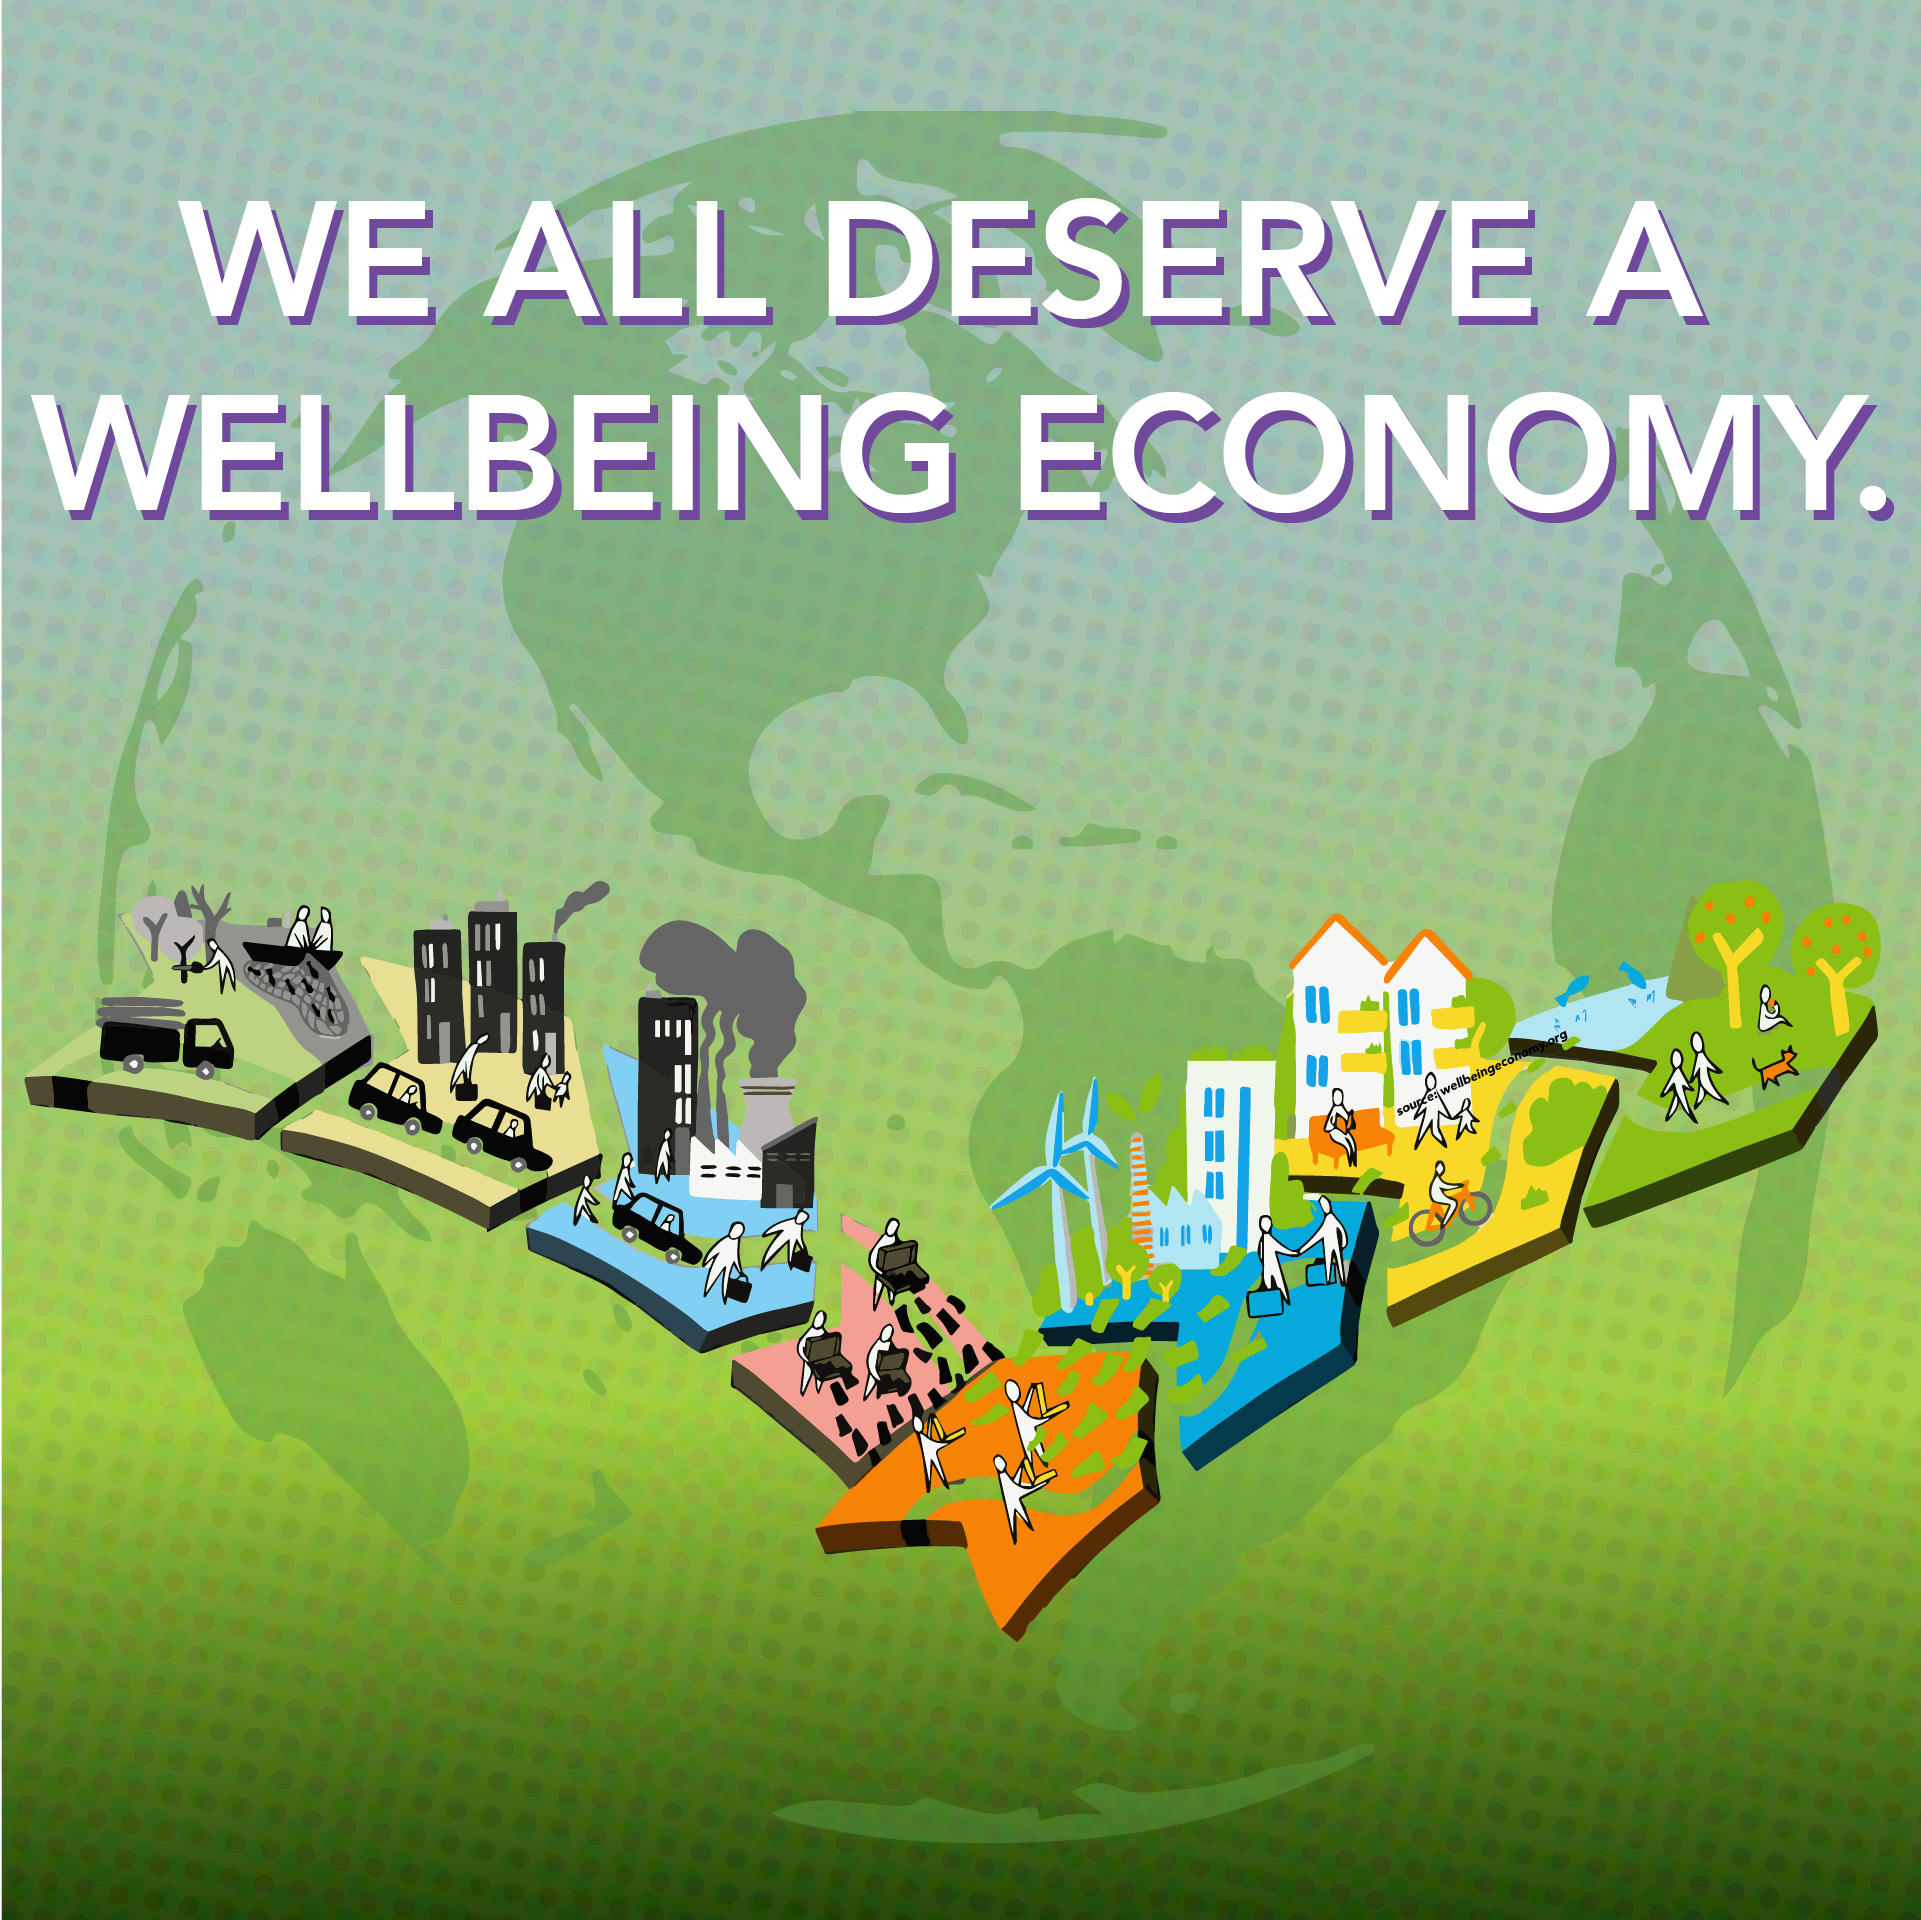 We all deserve a wellbeing economy